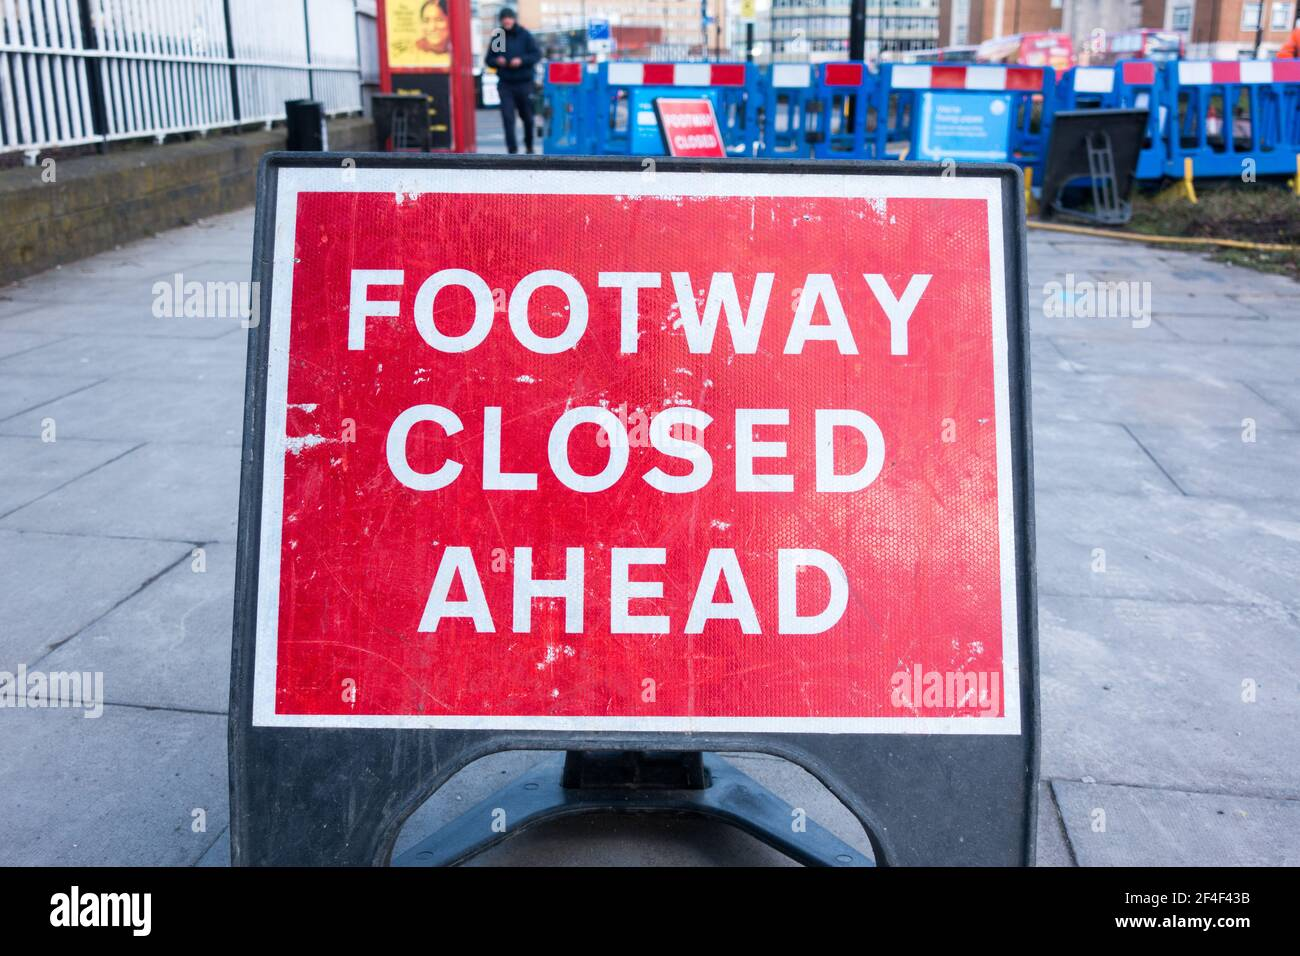 Footway closed ahead road sign in London Stock Photo